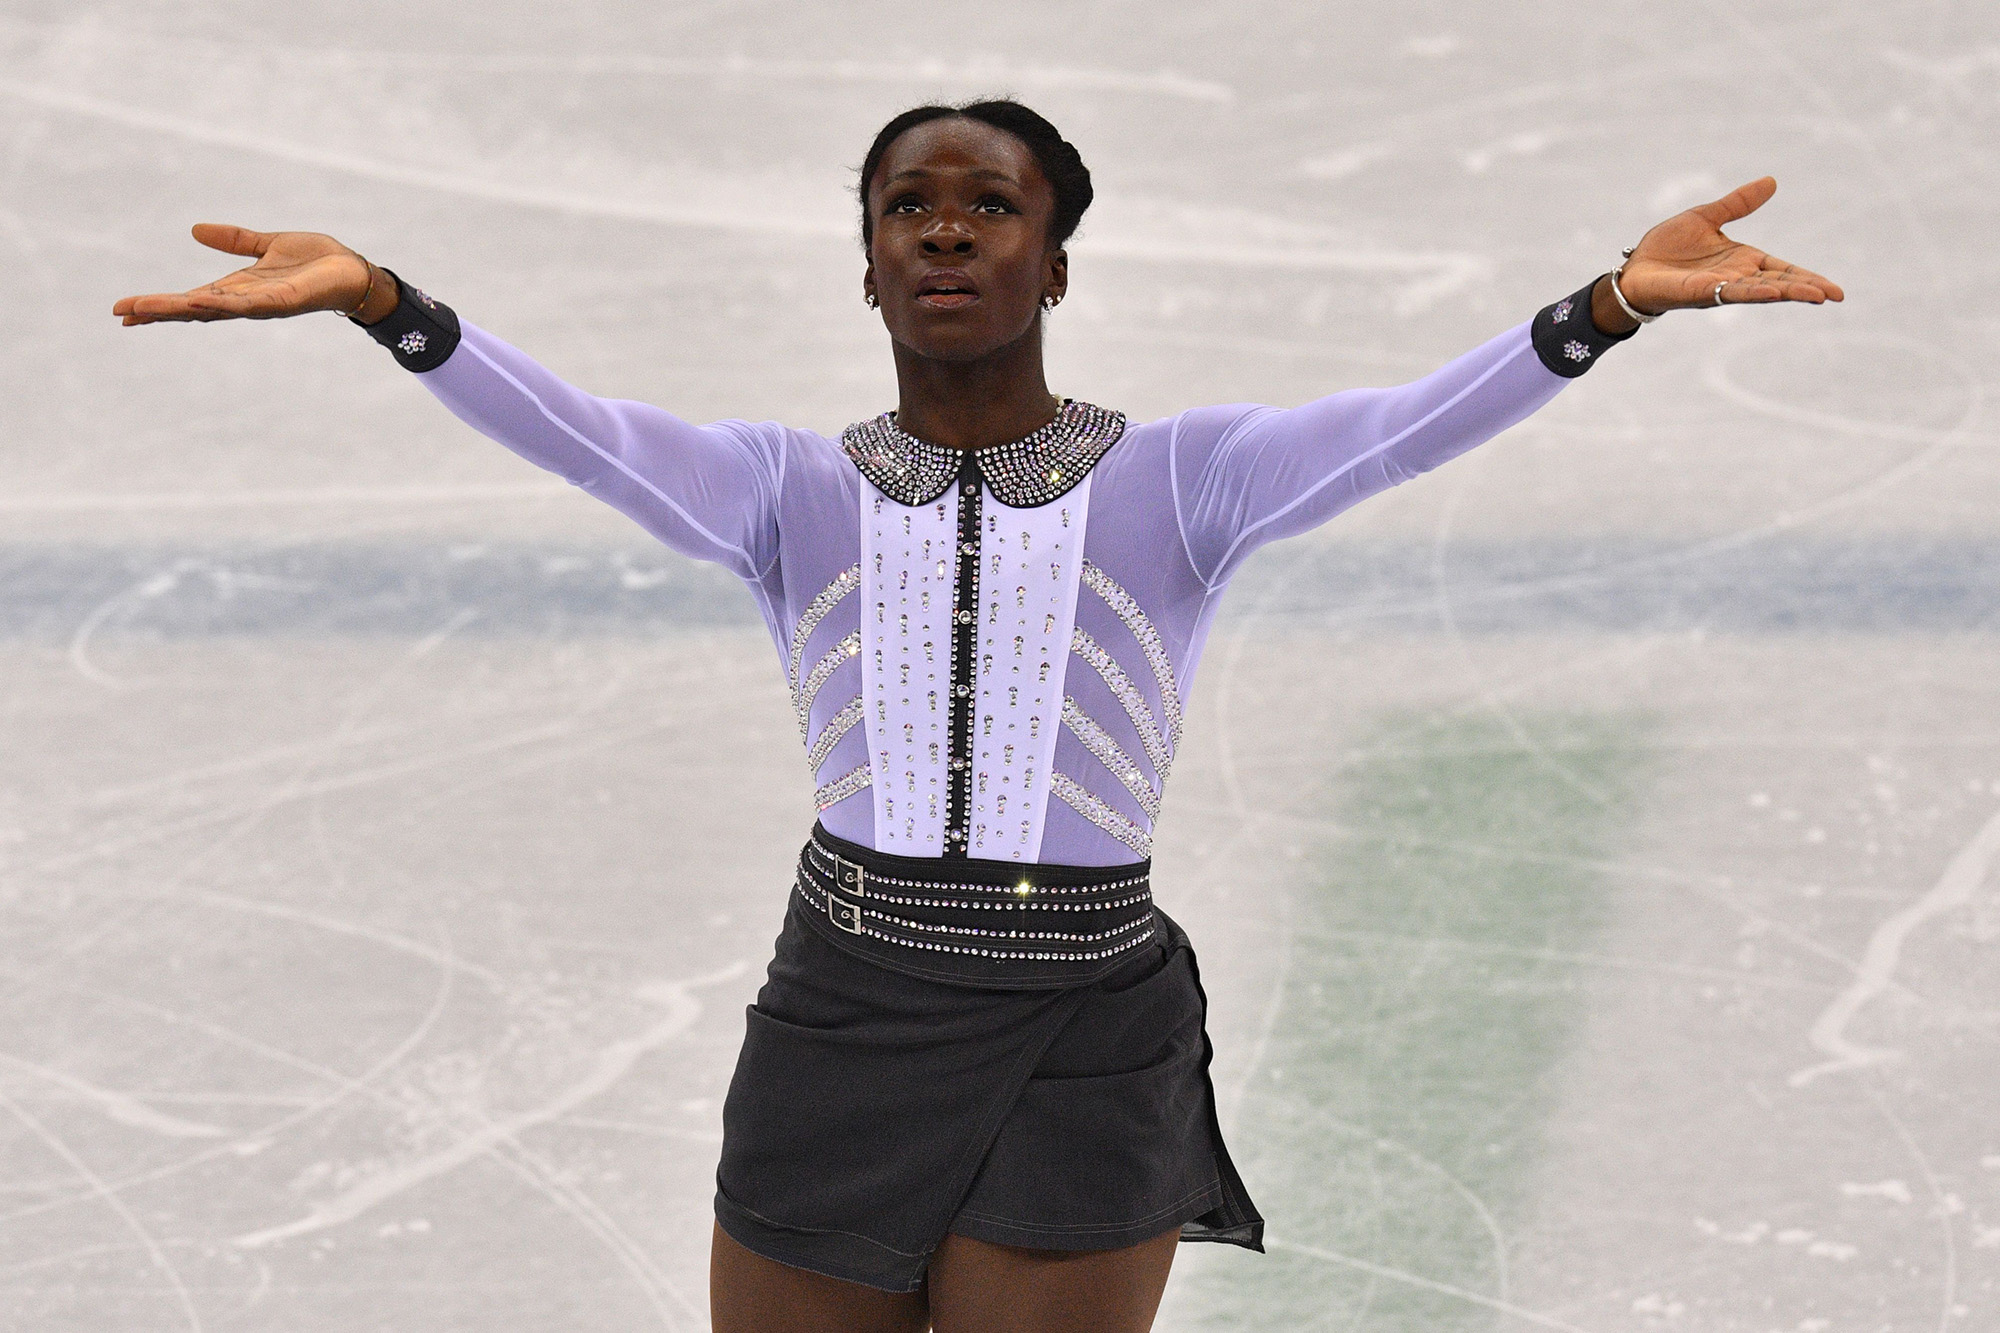 This French Figure Skater Made a Surprising Costume Change Midway Through Her Olympic Performance